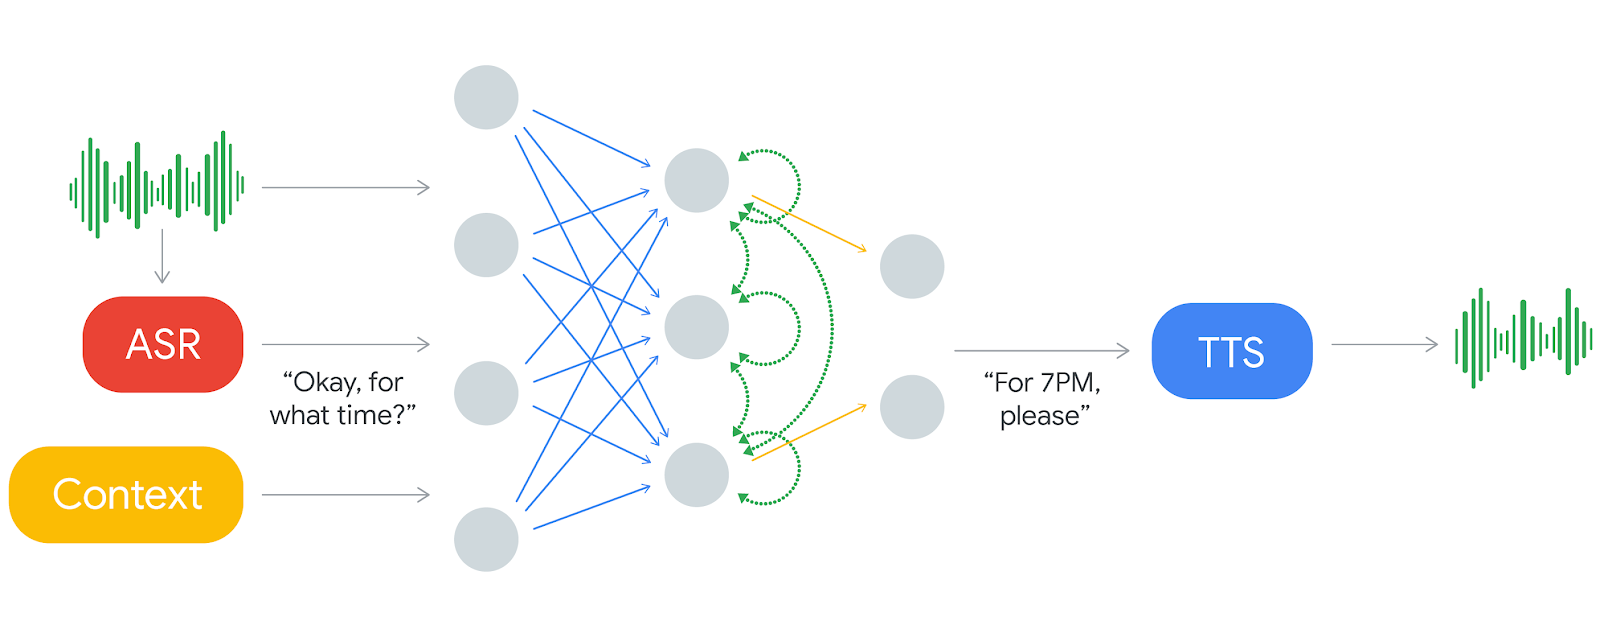 Google AI Blog: Google Duplex: An AI System for Accomplishing Real